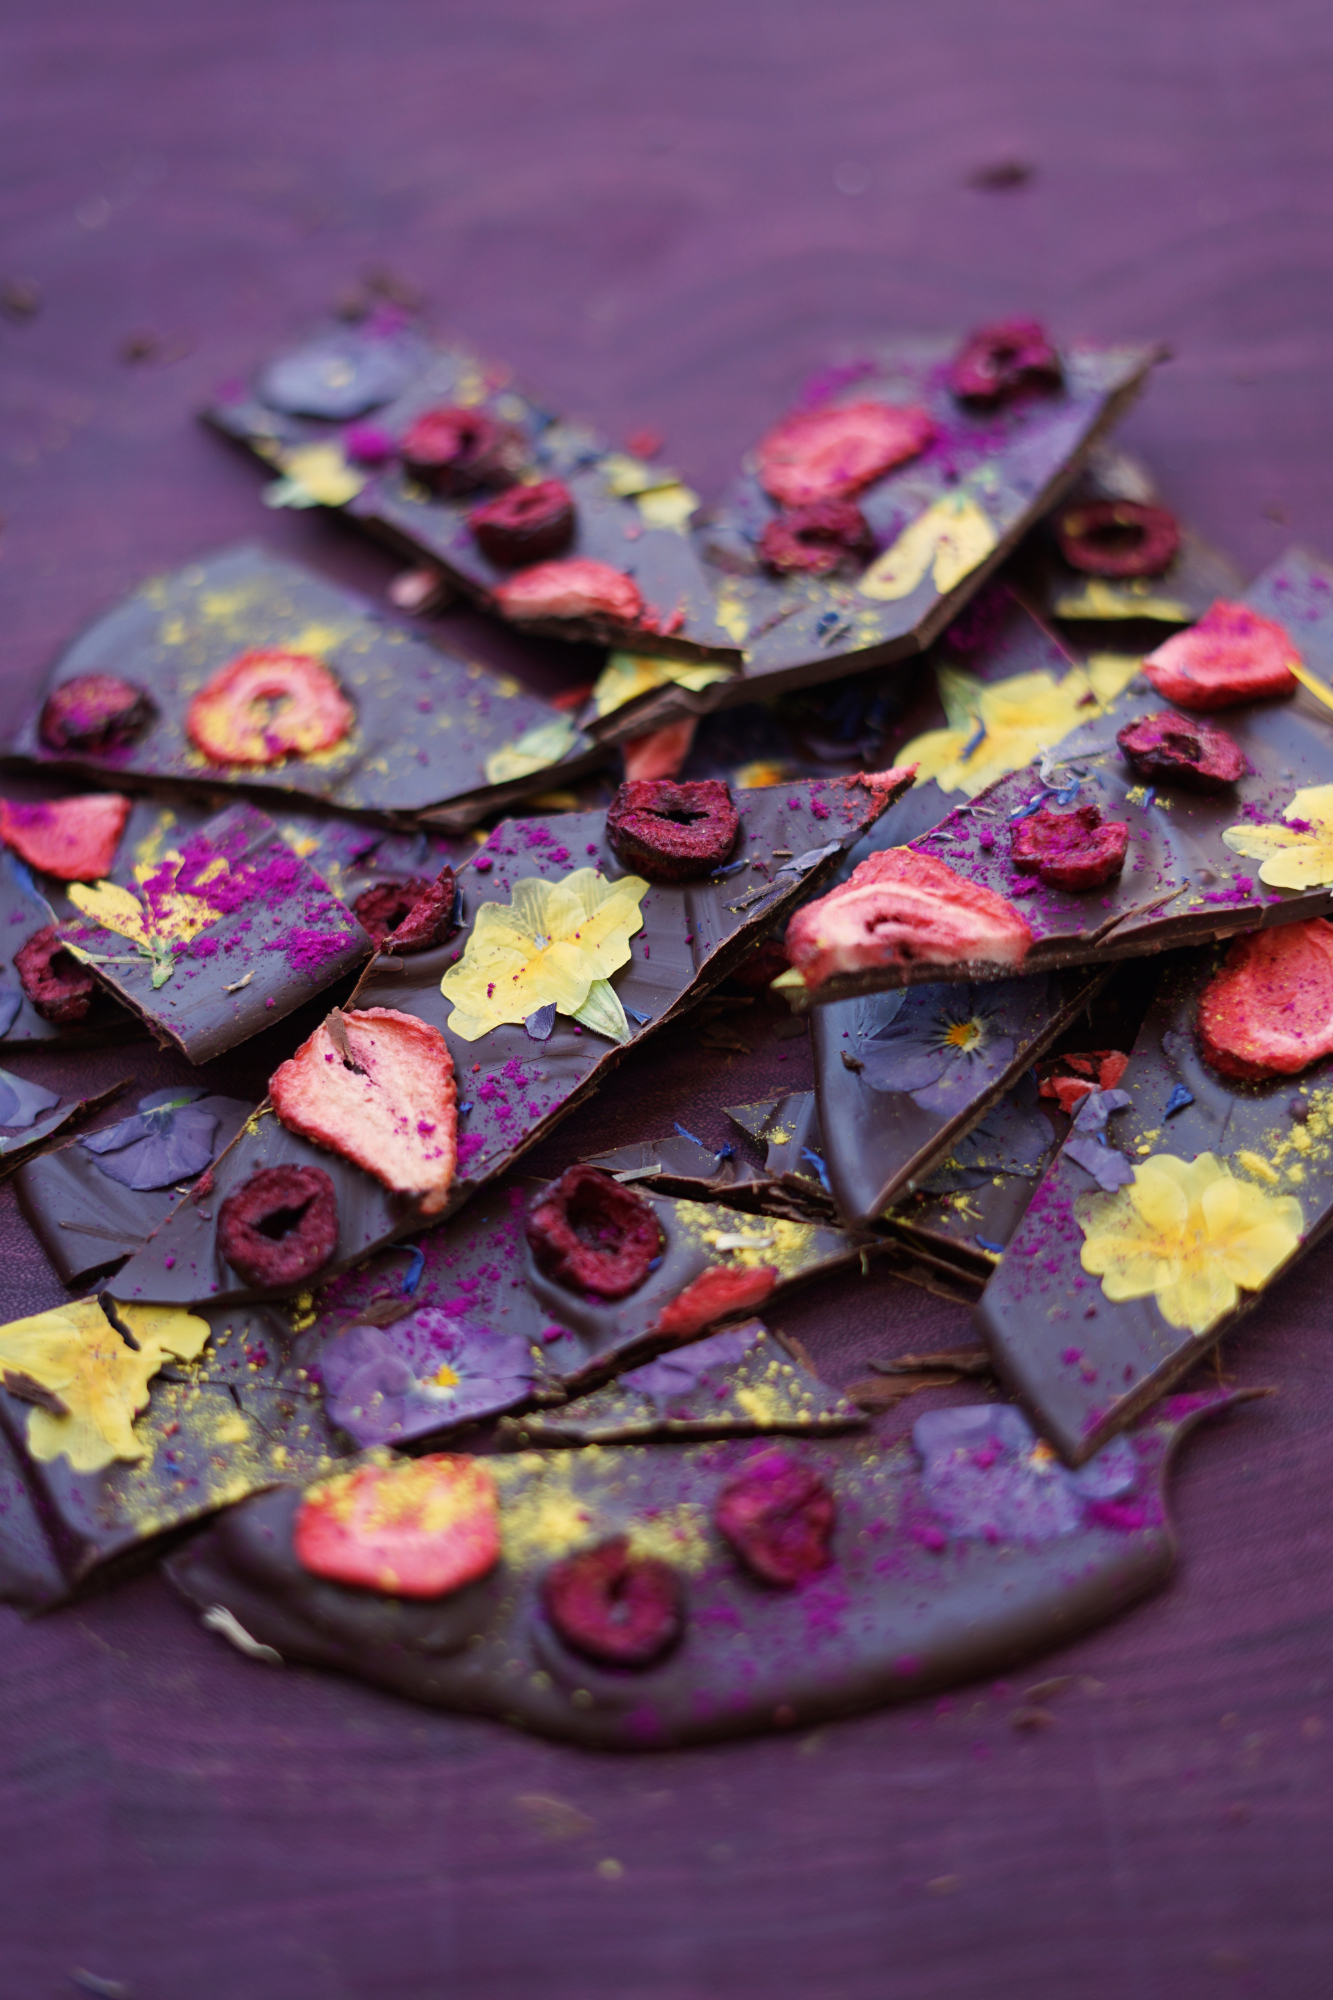 Use fresh picked dried flowers in artisan chocolate recipes